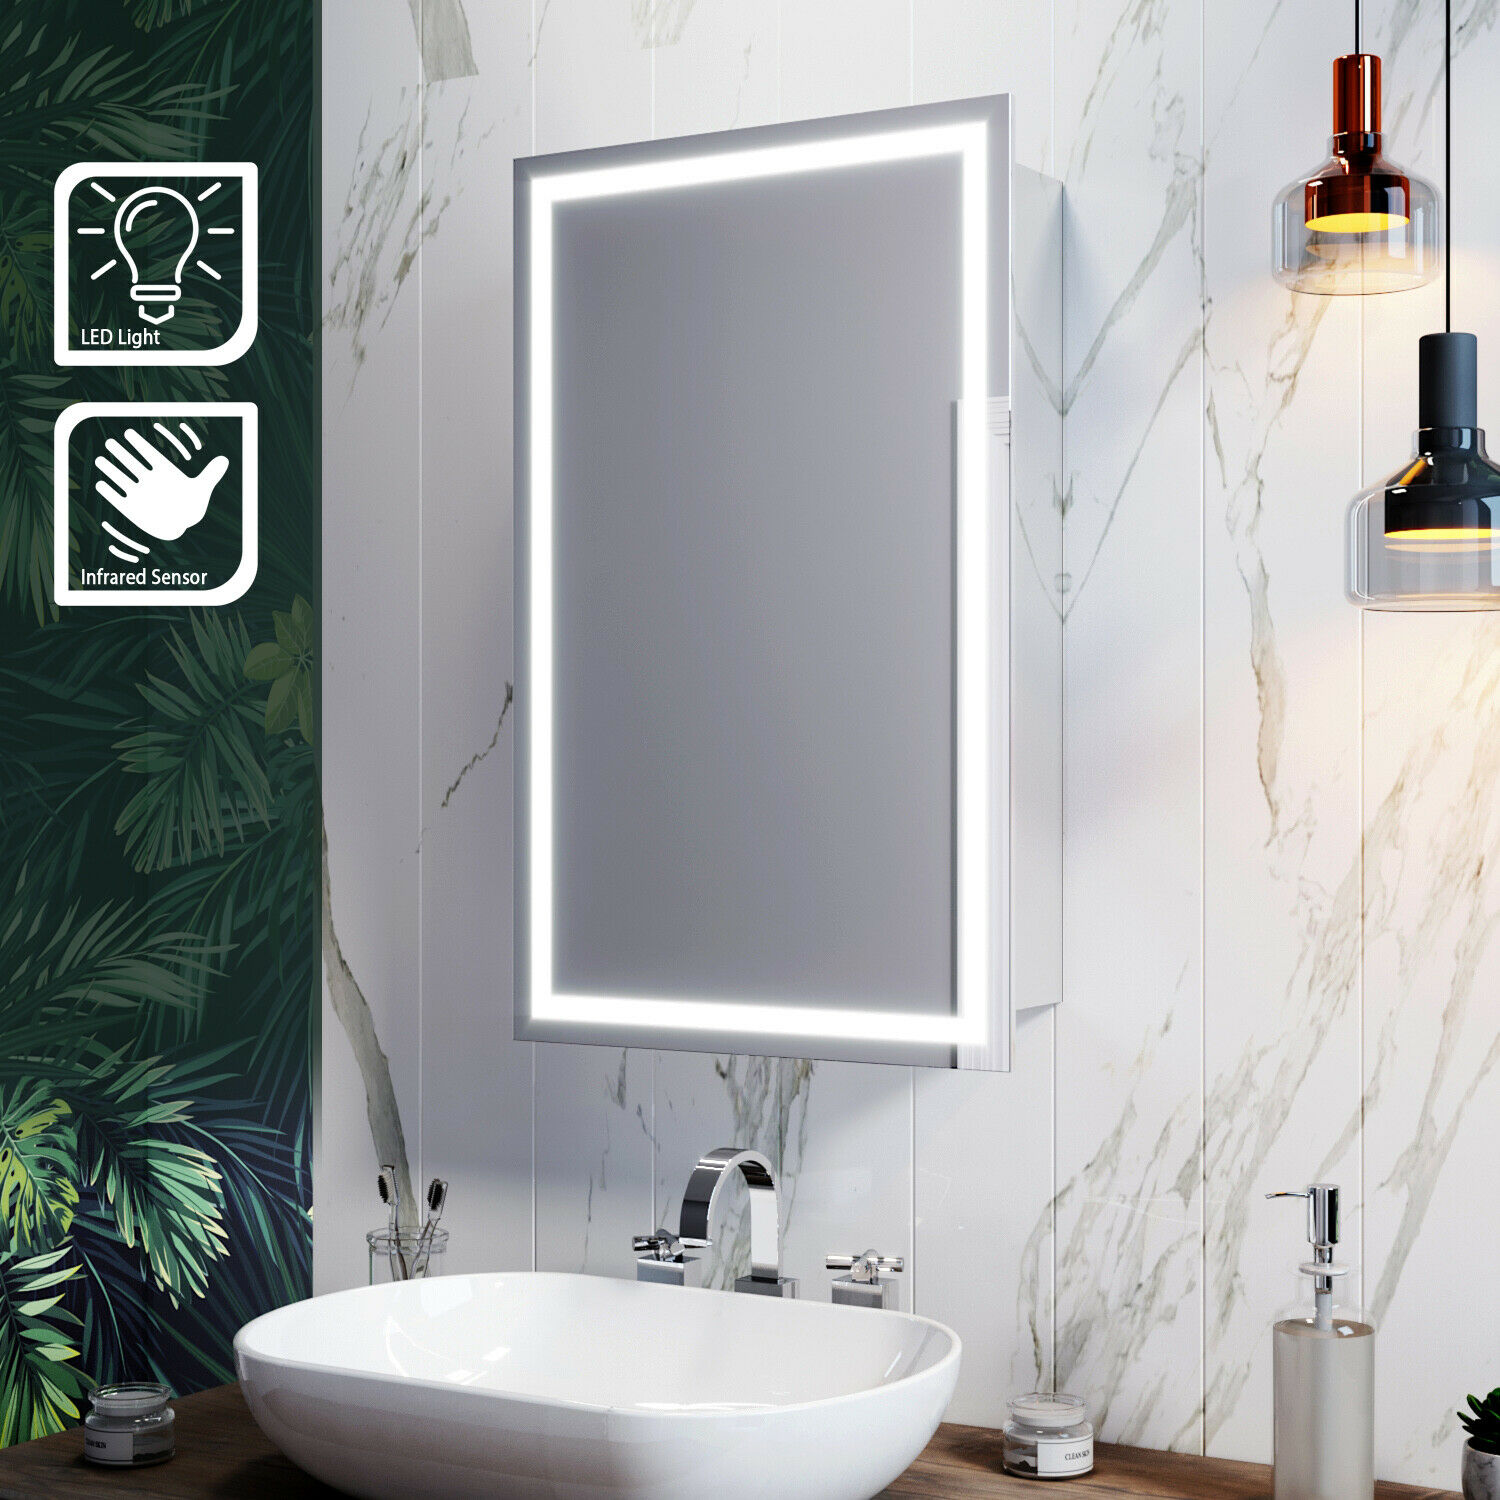 Illuminated LED Bathroom Mirror Cabinet with Lights Infrared Sensor Wall Mounted